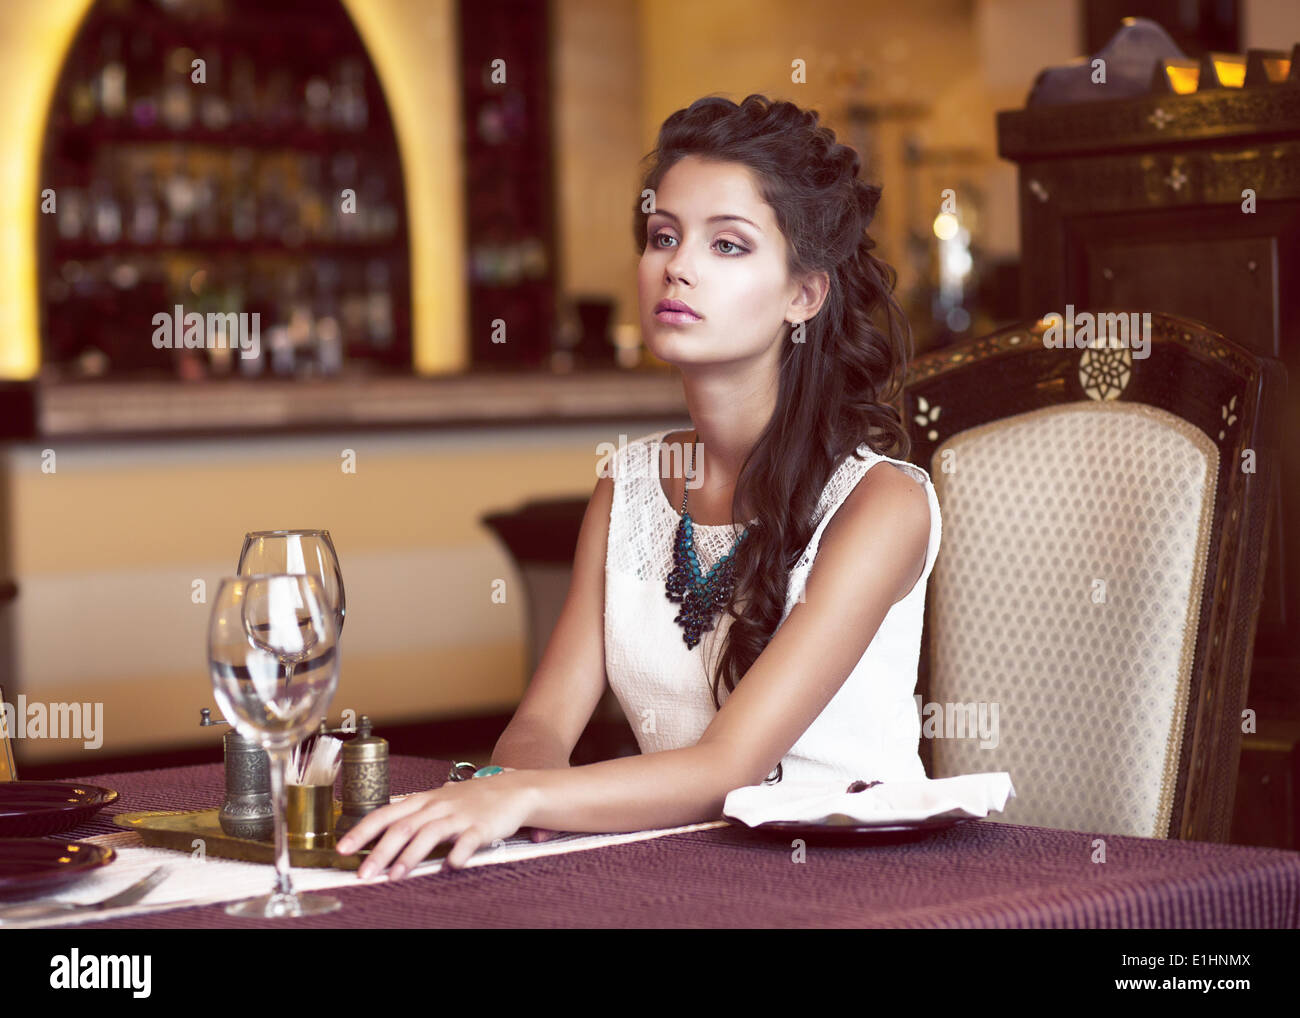 Dating. Dreaming Woman waiting at Decorated Table in Restaurant Interior - Stock Image